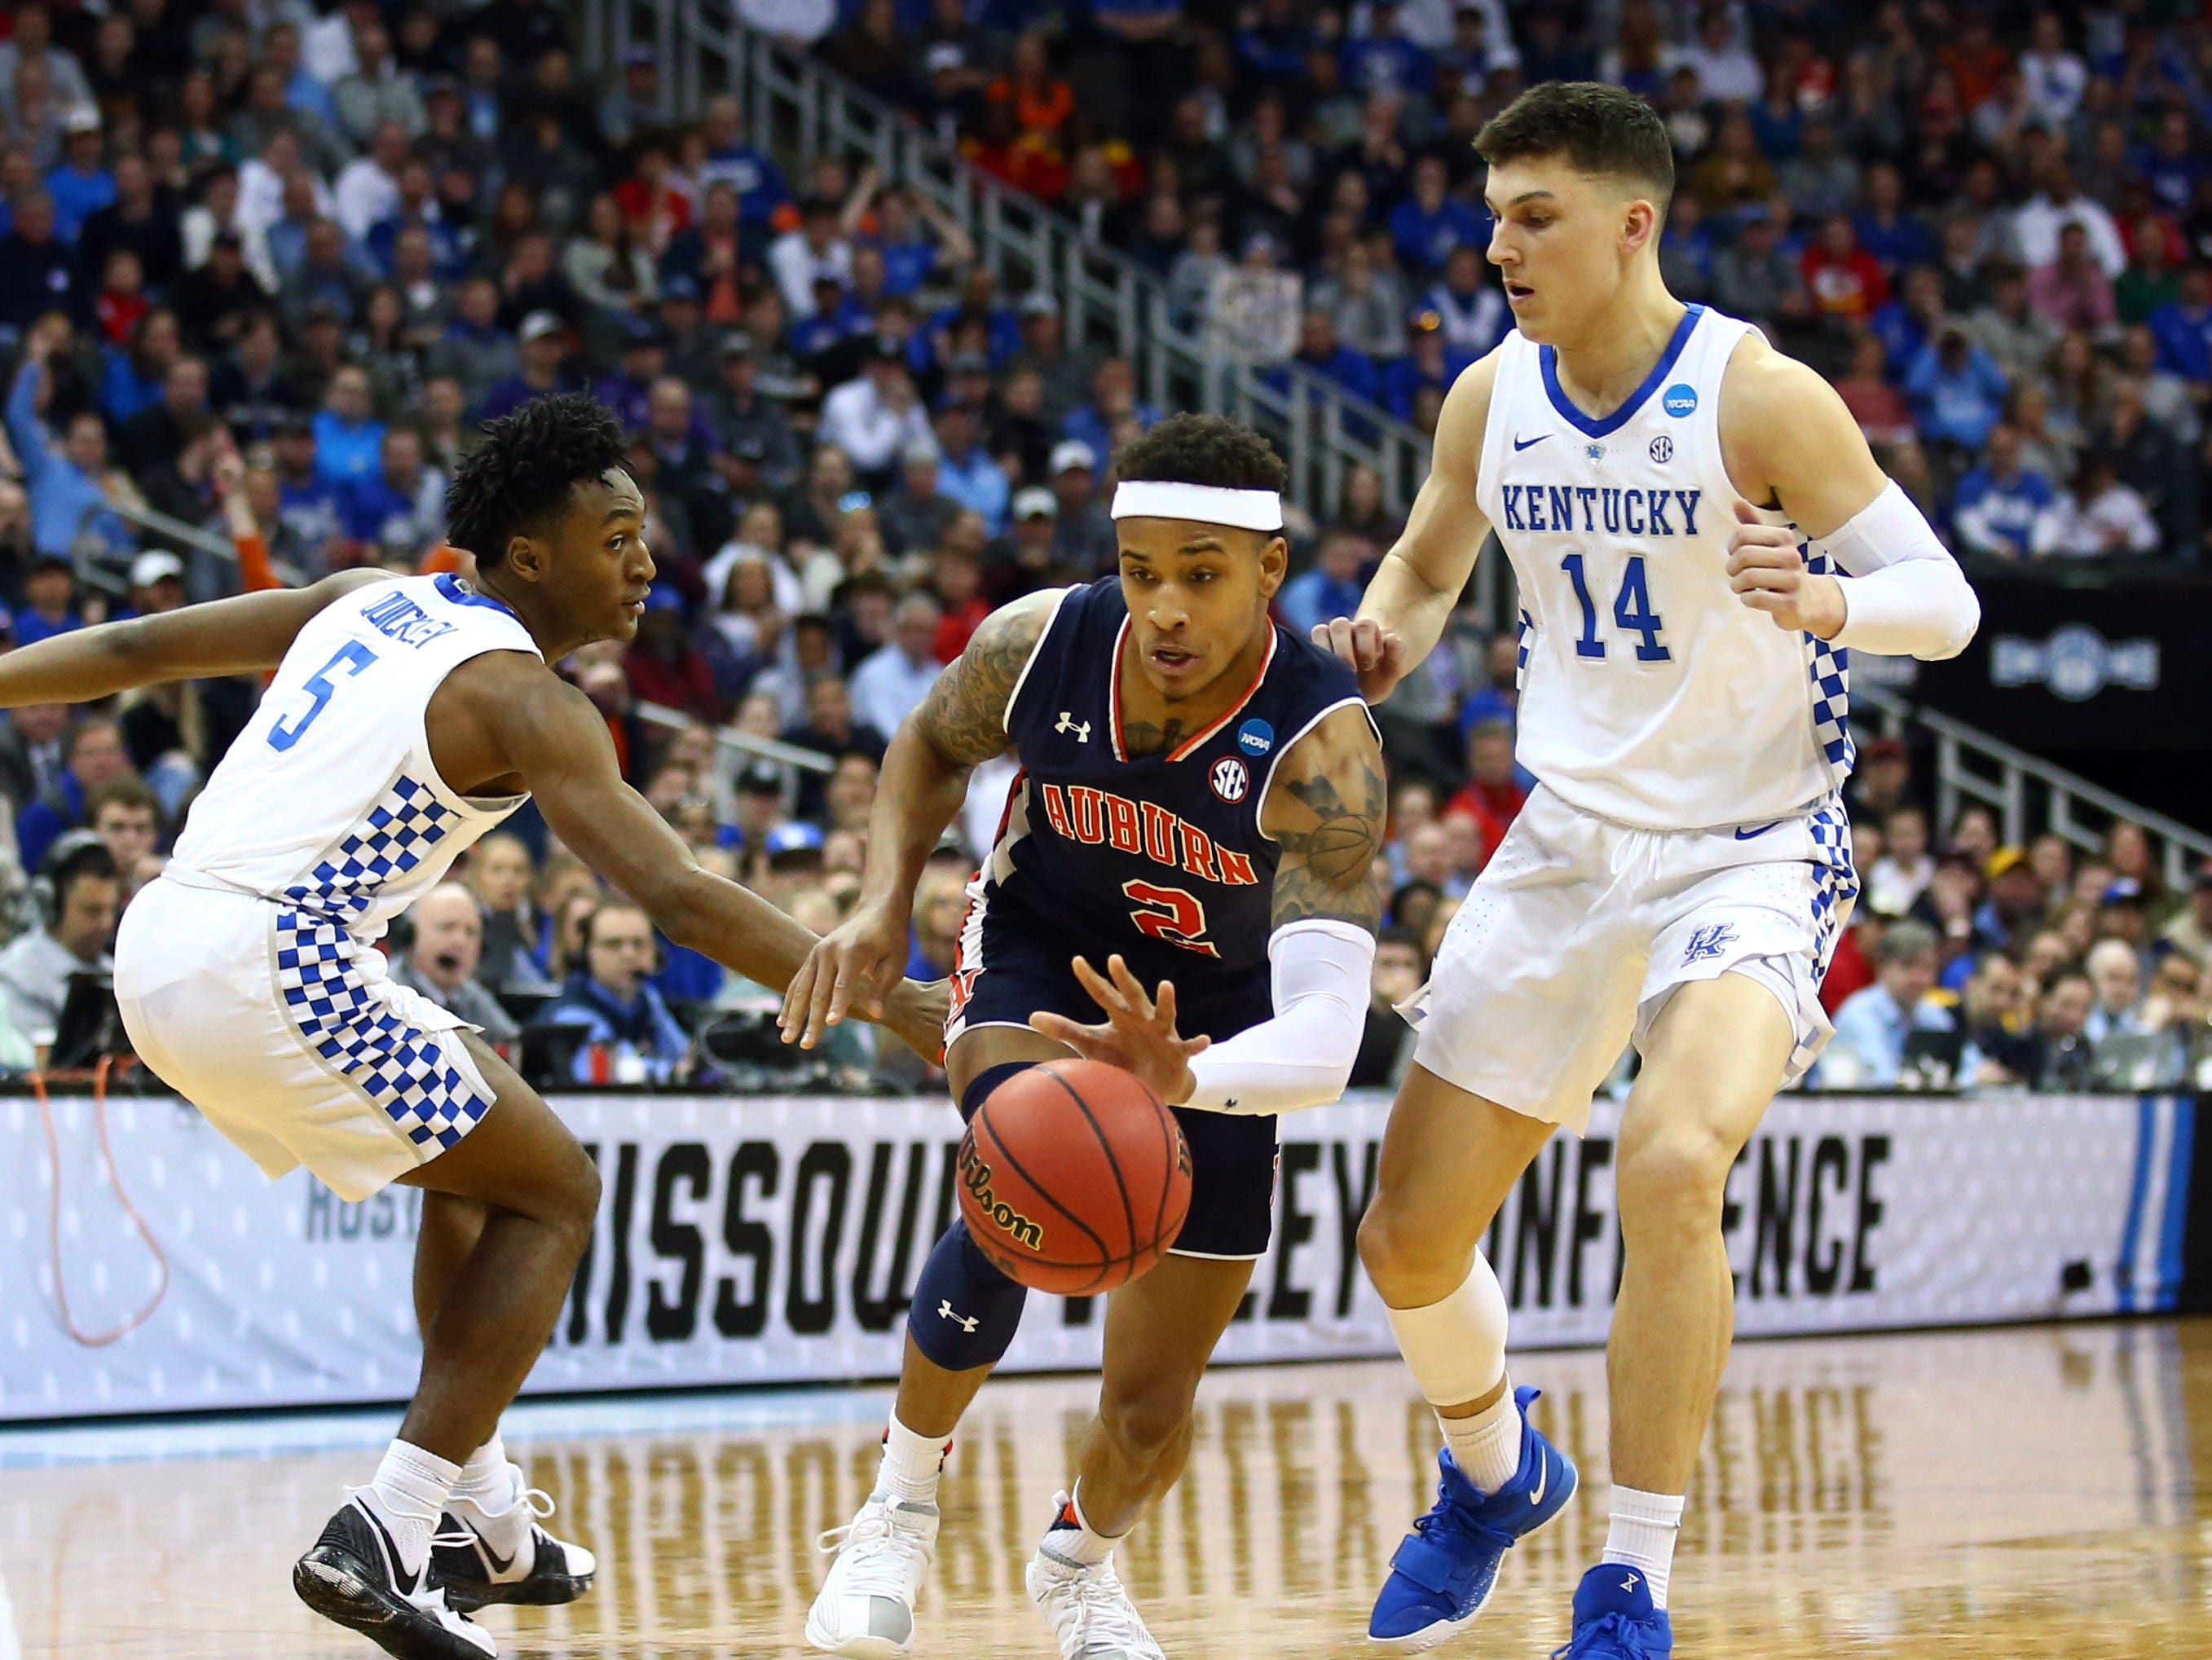 Mar 31, 2019; Kansas City, MO, United States; Auburn Tigers guard Bryce Brown (2) dribbles between Kentucky Wildcats guard Immanuel Quickley (5) and guard Tyler Herro (14) during the first half in the championship game of the midwest regional of the 2019 NCAA Tournament at Sprint Center. Mandatory Credit: Jay Biggerstaff-USA TODAY Sports